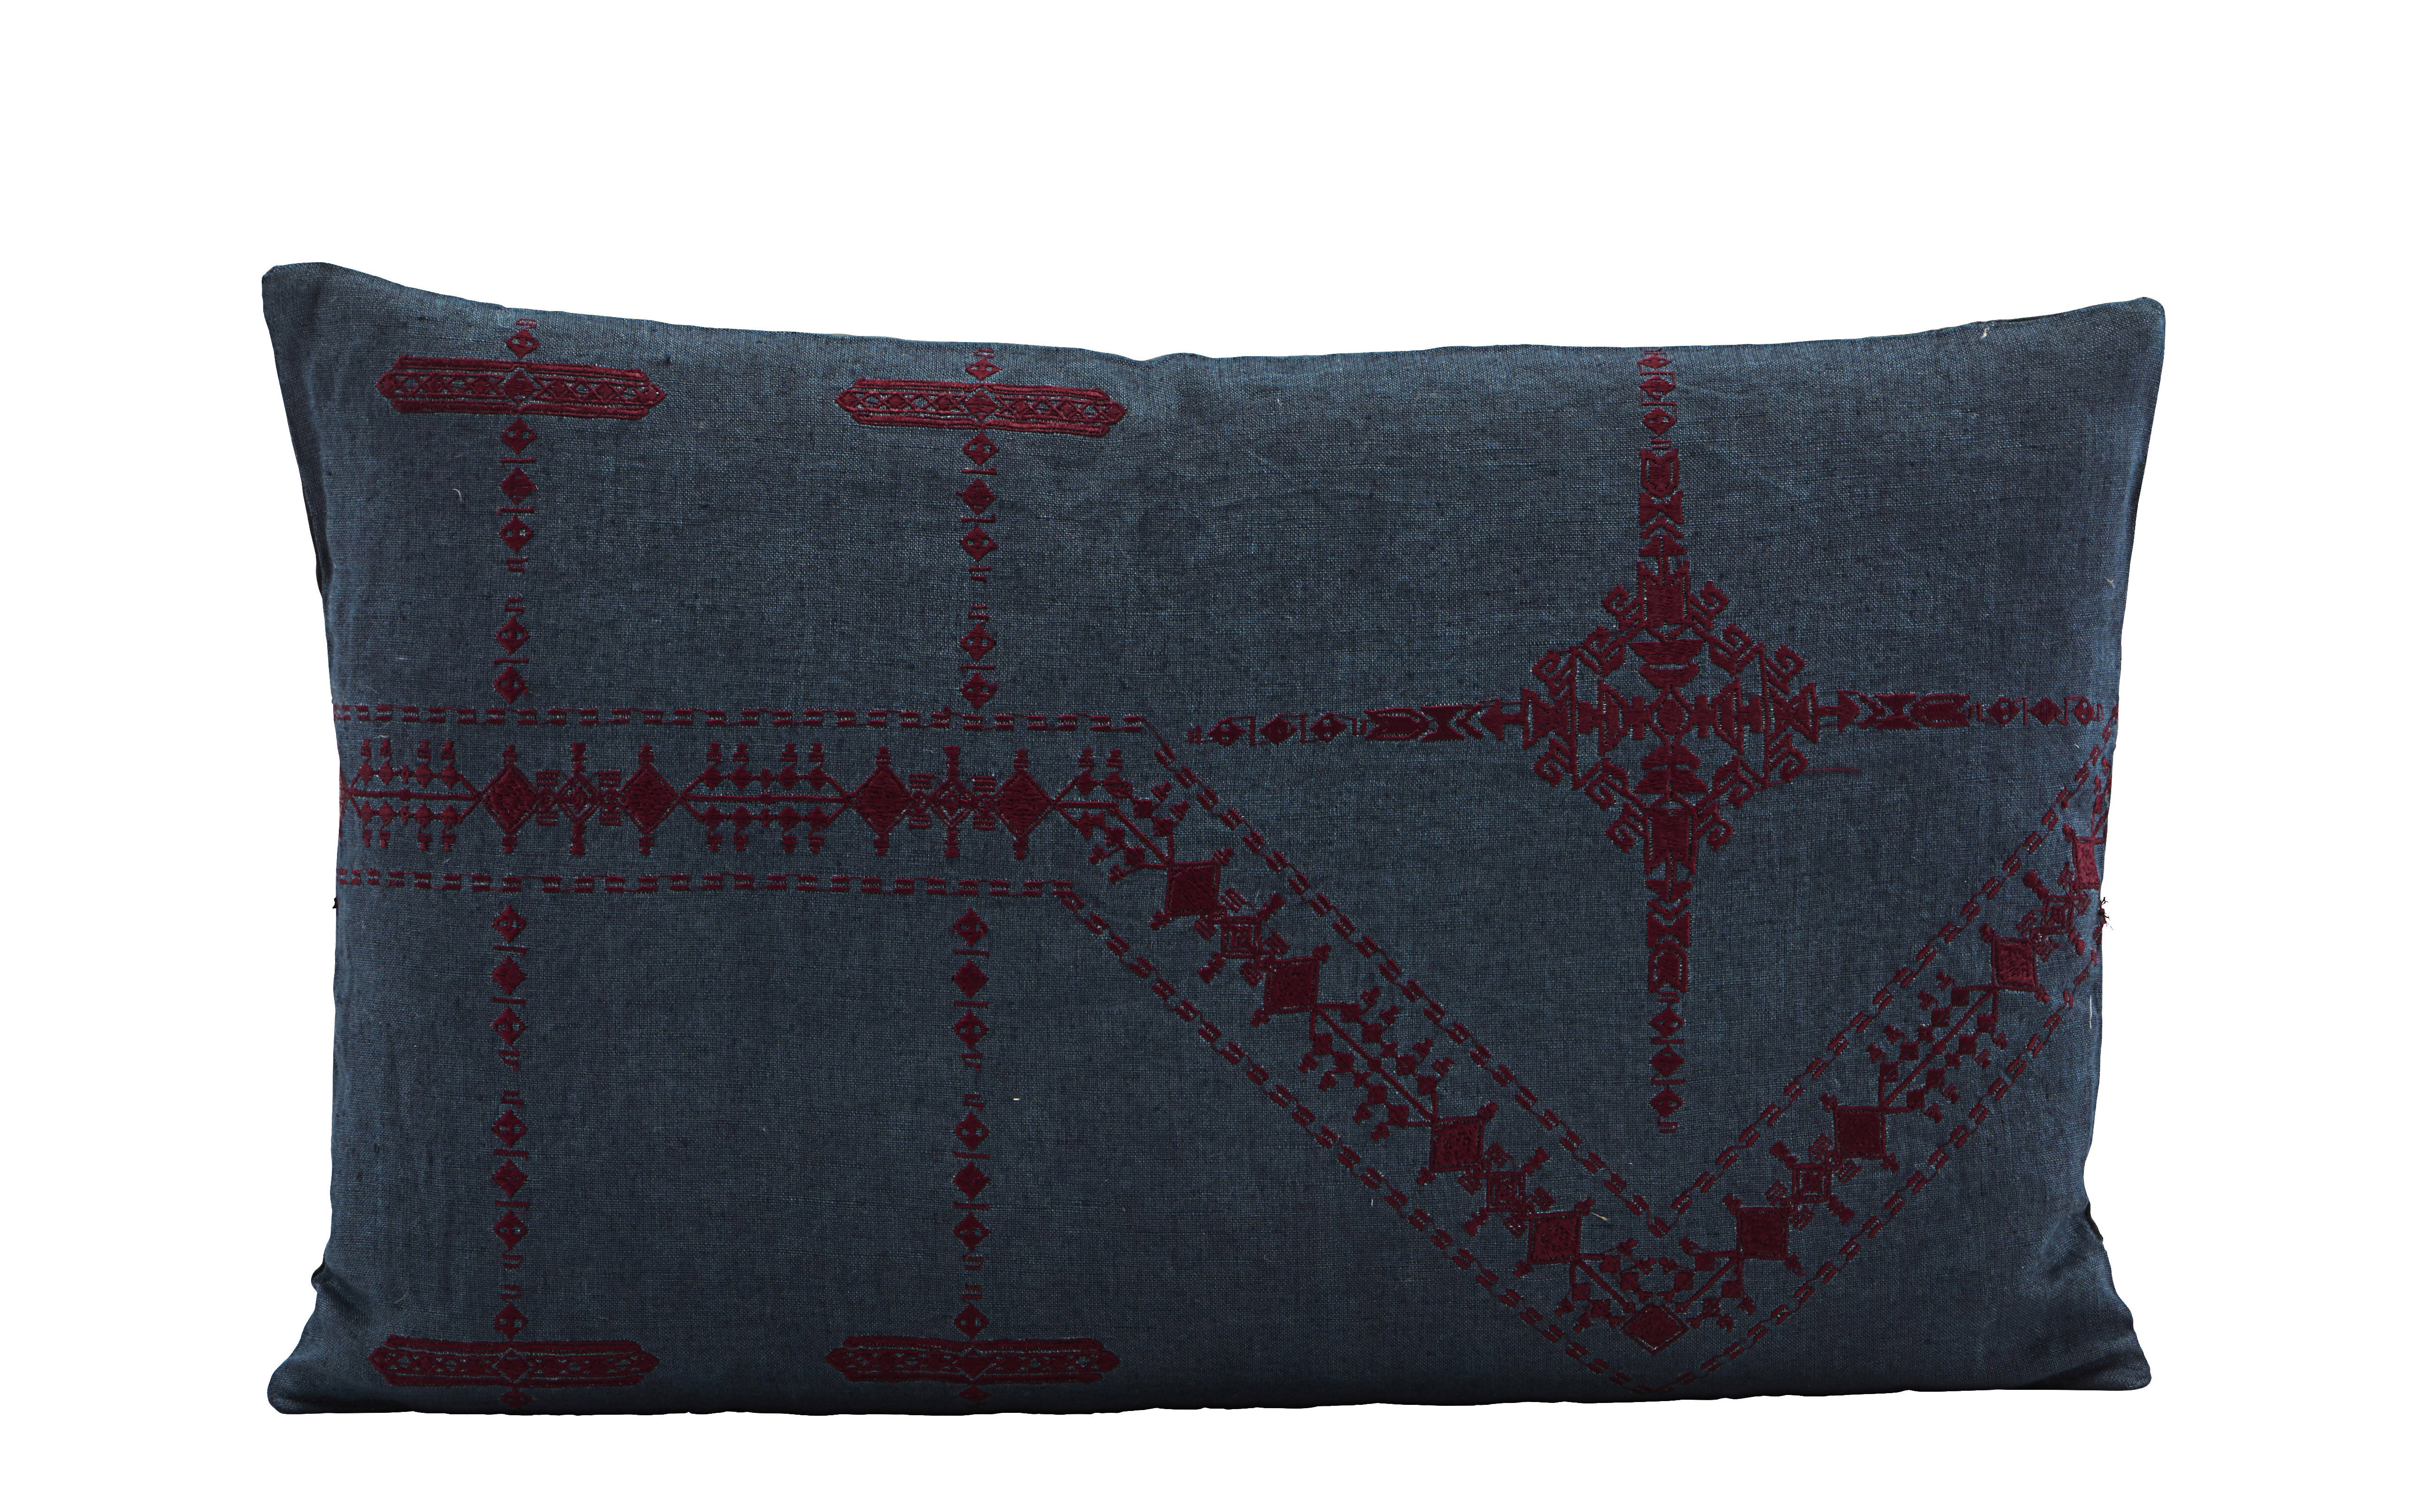 Decoration - Cushions & Poufs - Inka Cushion - / Linen - 30 x 50 cm by House Doctor - Blue - Down, Linen